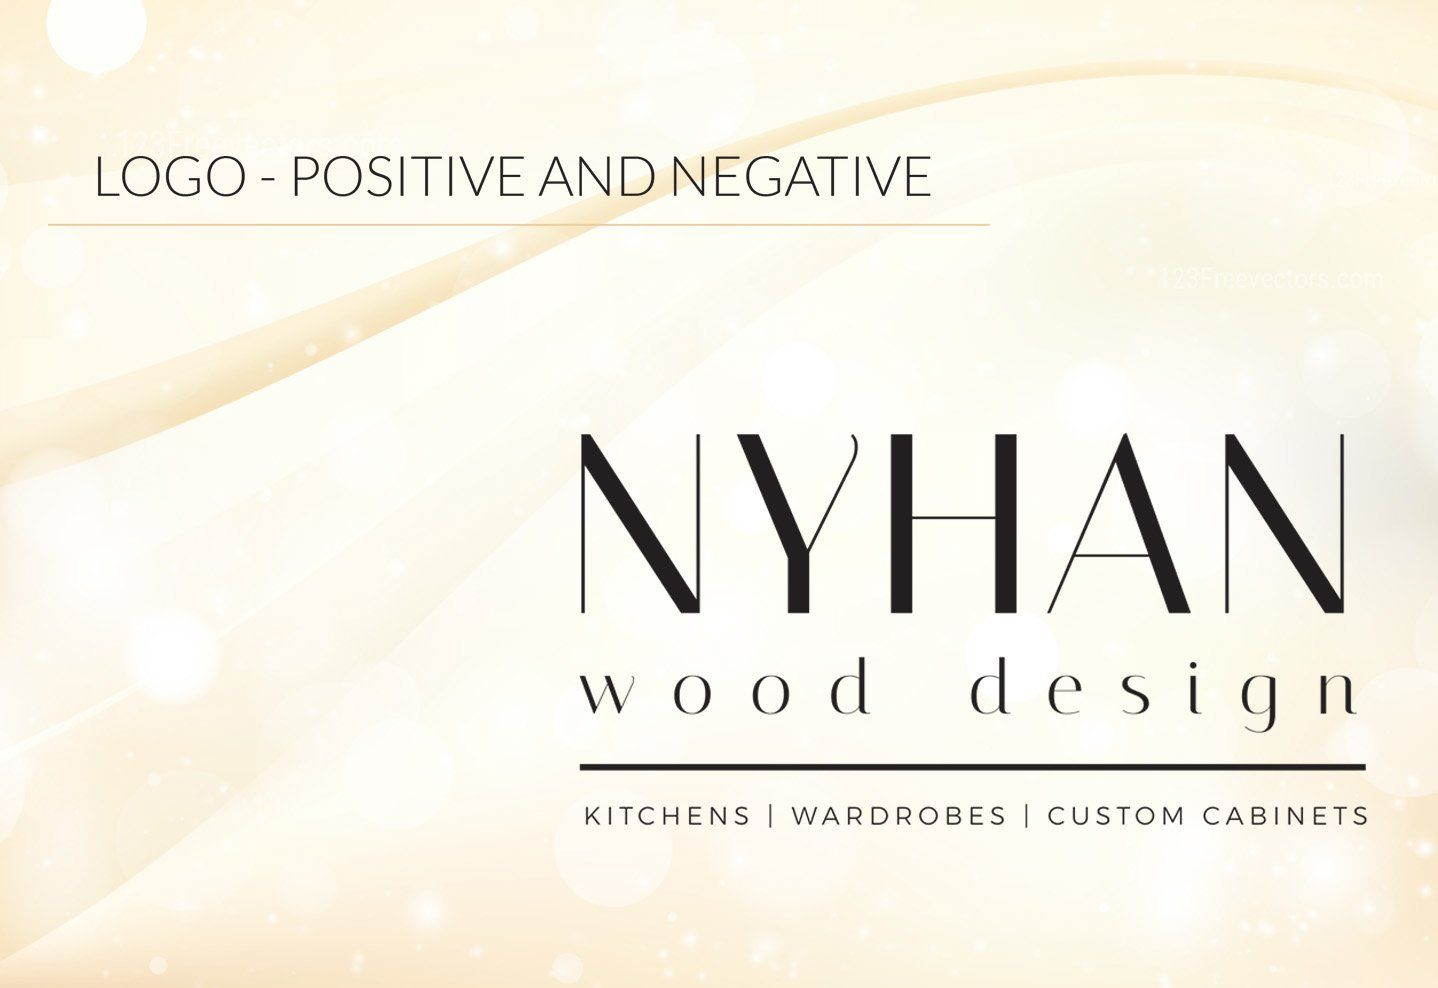 Nyhan Wood Design - Logo Positive and Negative